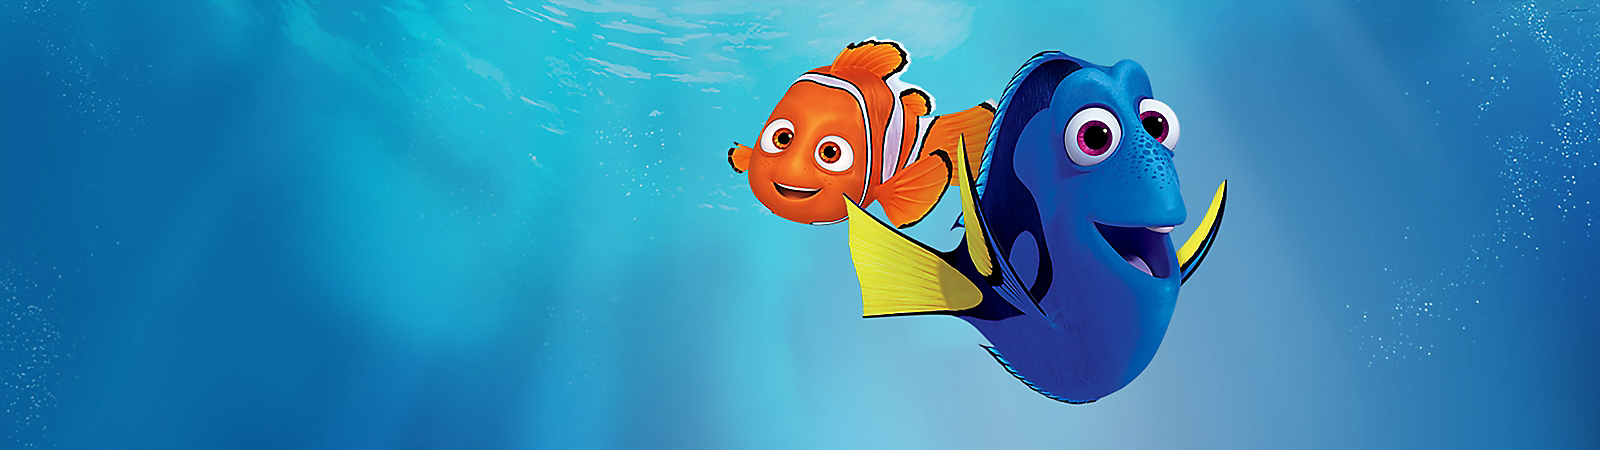 Finding Dory | PIXAR | shopDisney